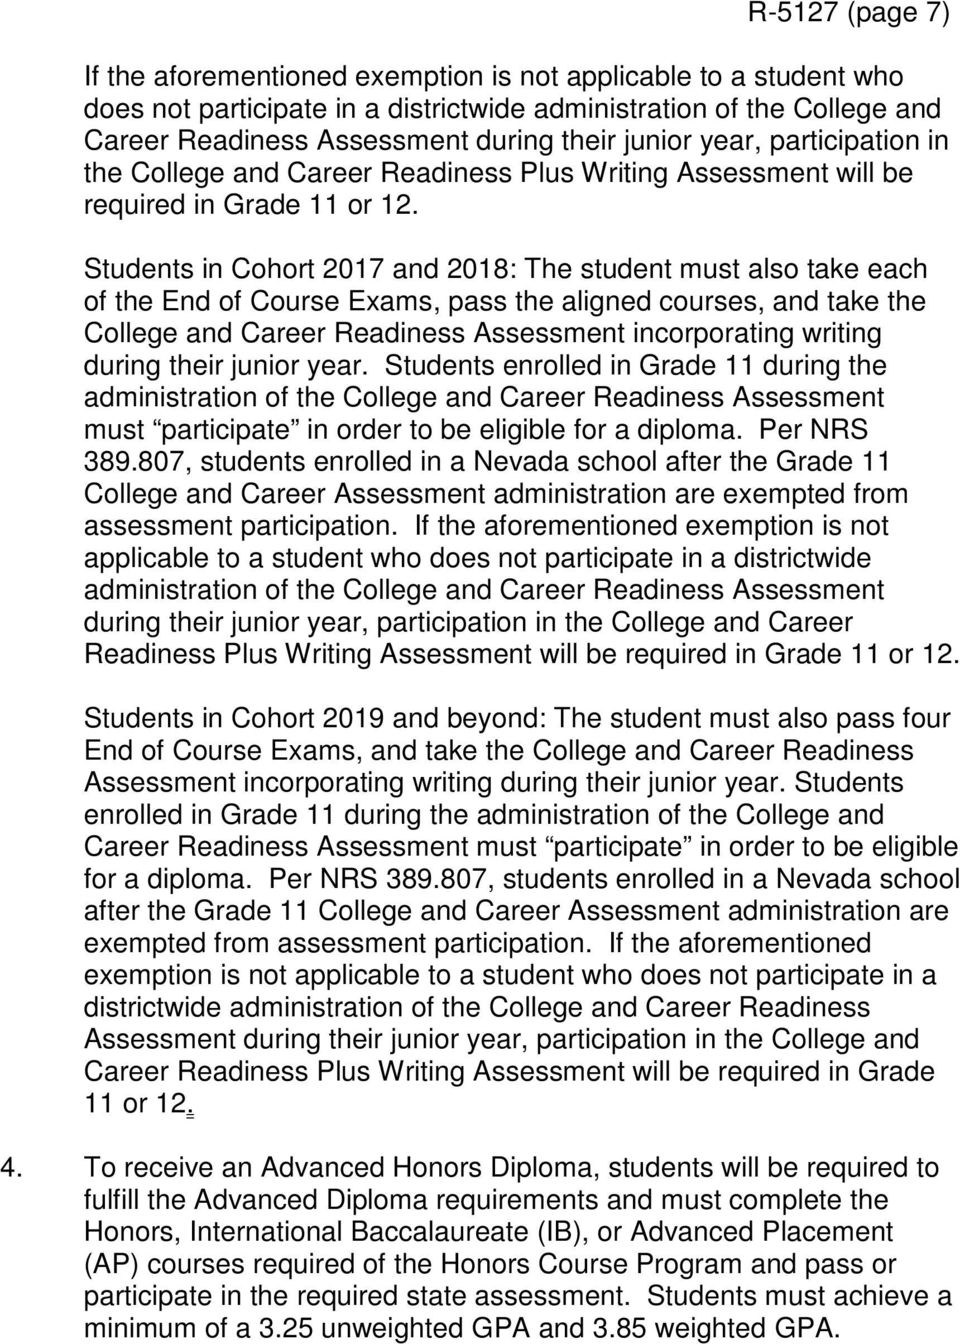 Students in Cohort 2017 and 2018: The student must also take each of the End of Course Exams, pass the aligned courses, and take the College and Career Readiness Assessment incorporating writing